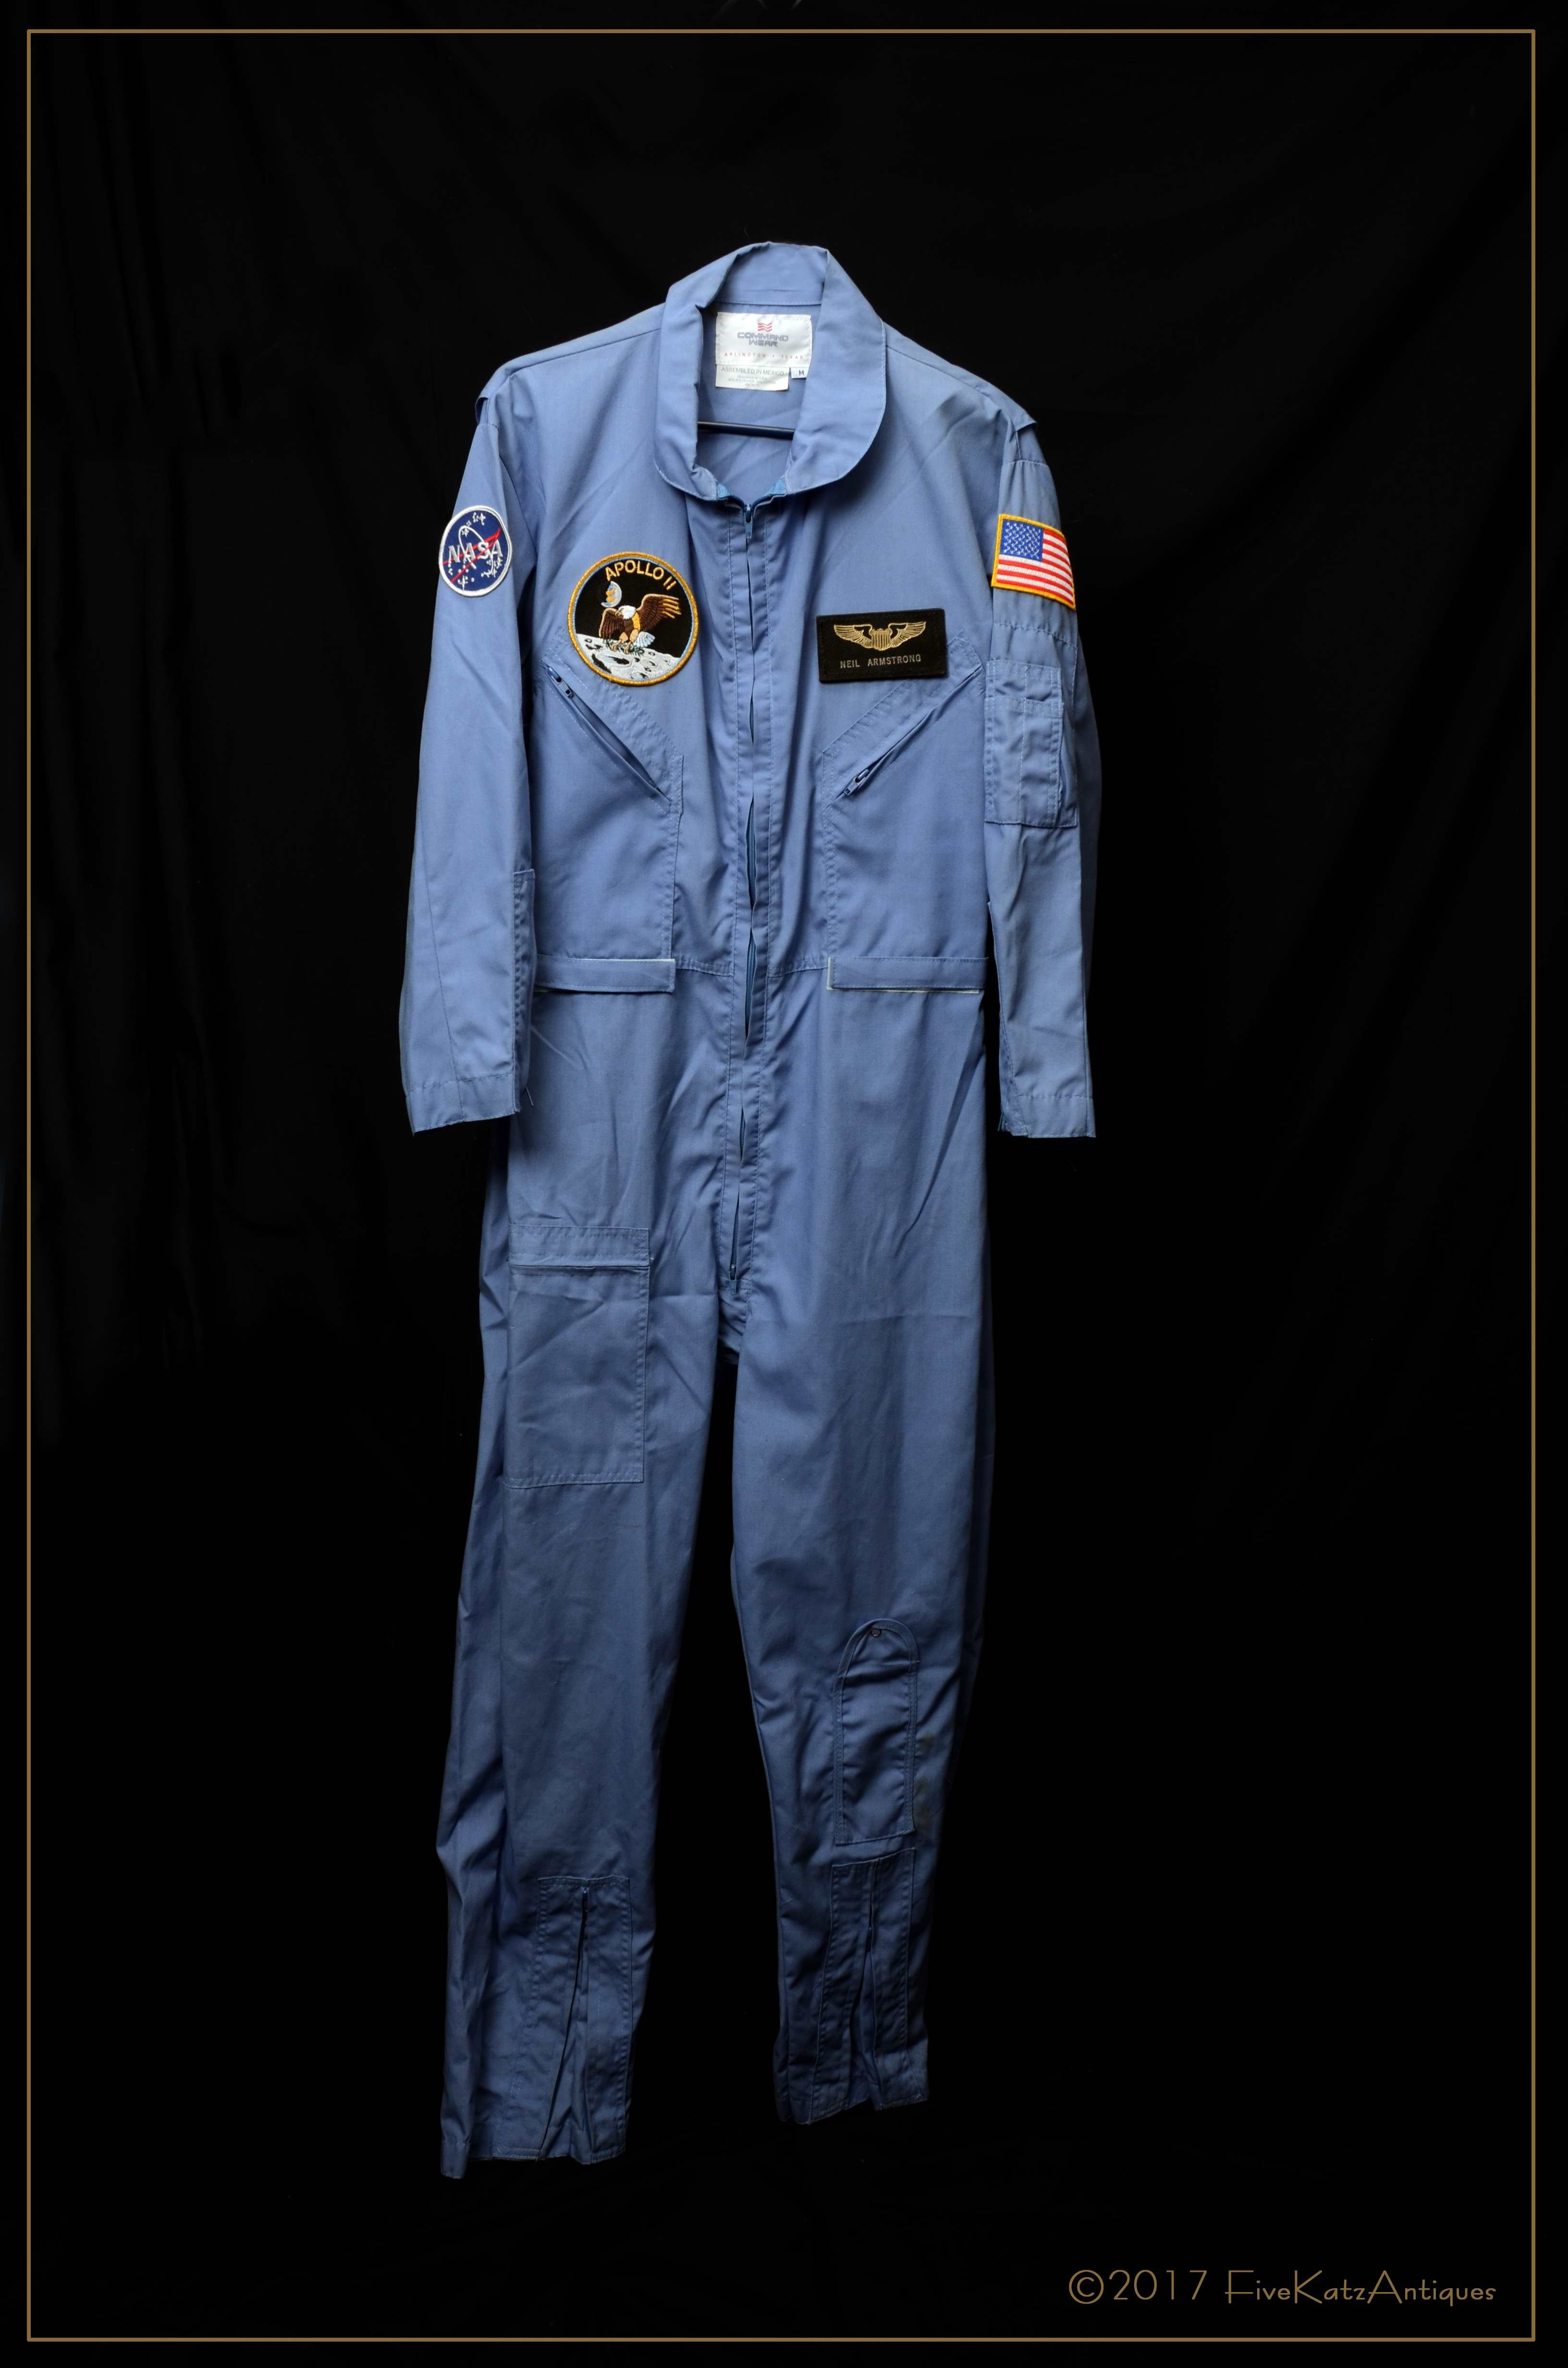 5849459a8194 Vintage Reproduction NASA Neil Armstrong flight suit